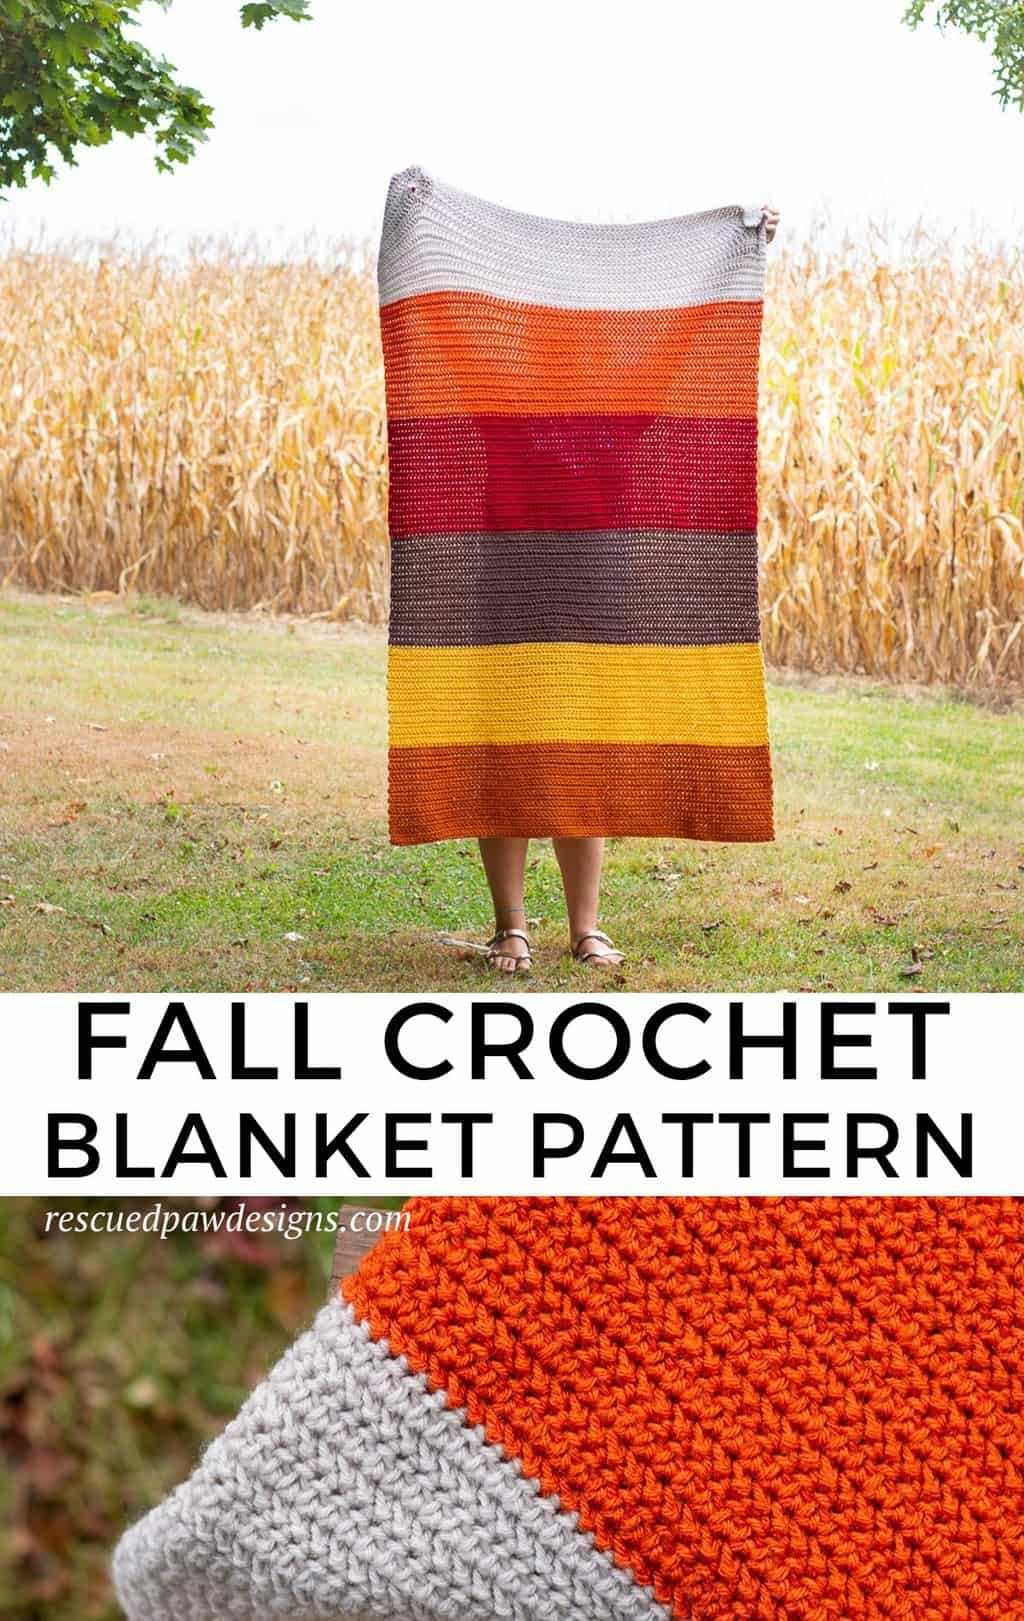 Herringbone Half Double Crochet Blanket Easycrochet Com Crochet Blanket Patterns Fall Crochet Patterns Modern Crochet Blanket